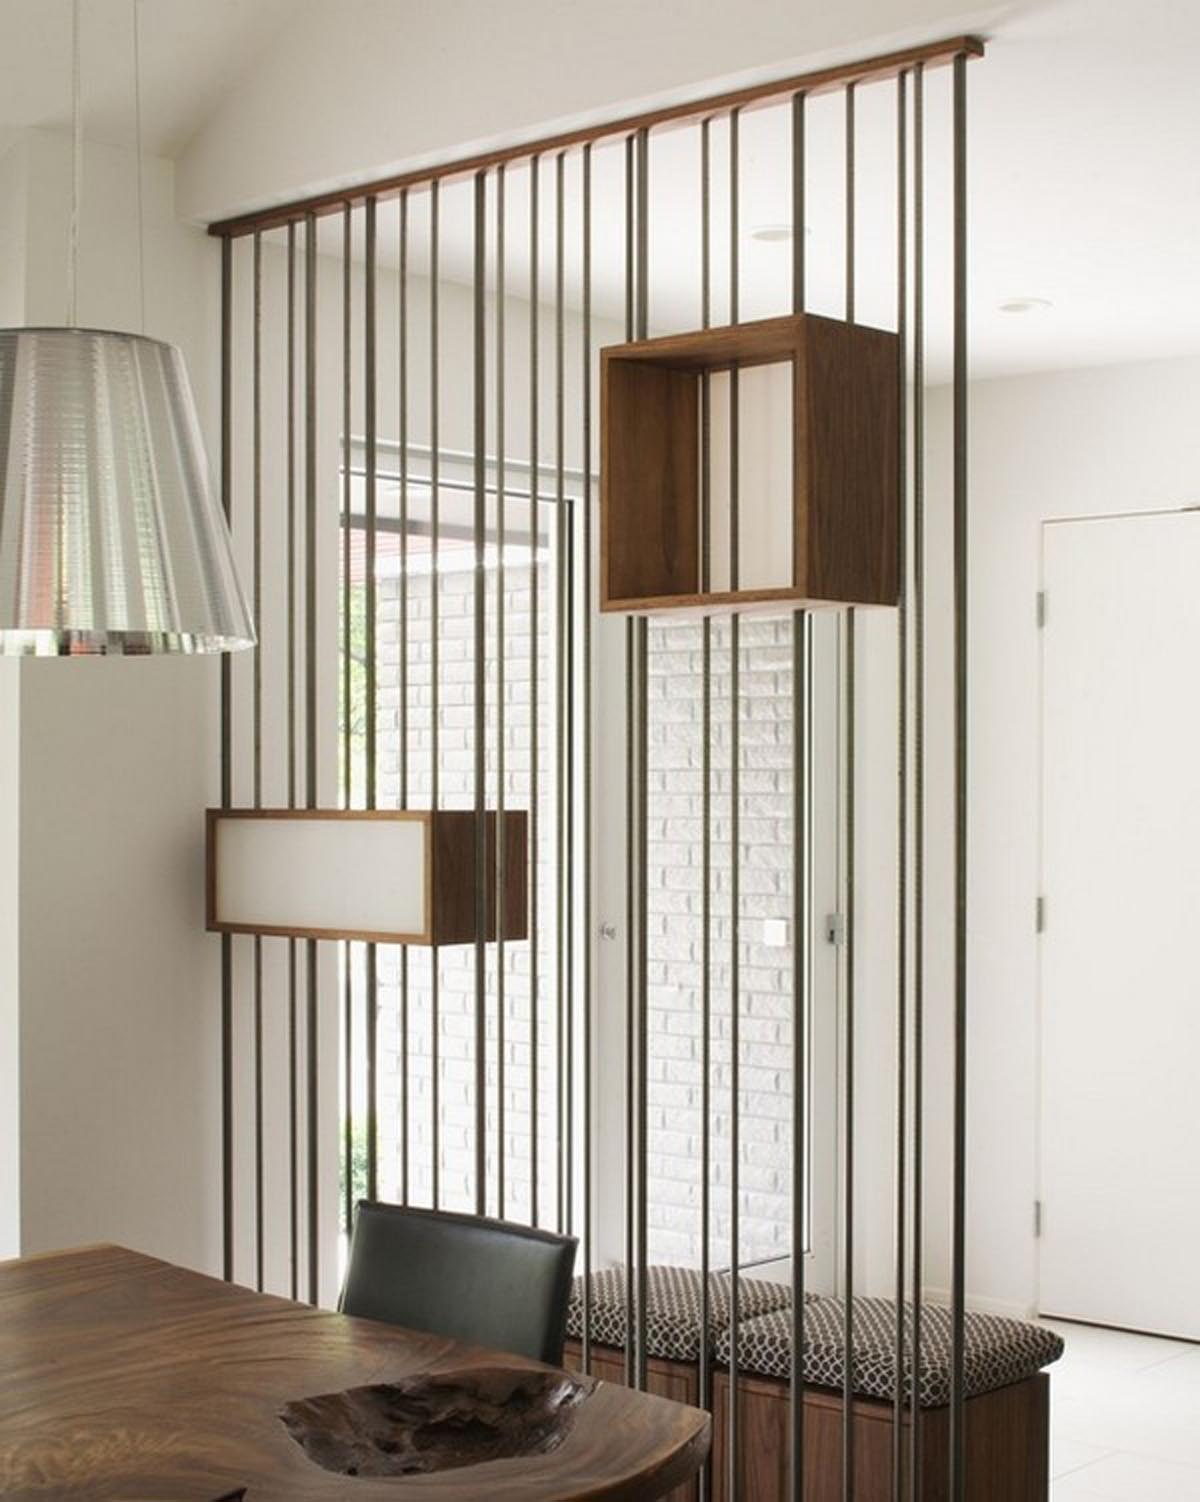 creative room dividers for lofts photo - 3